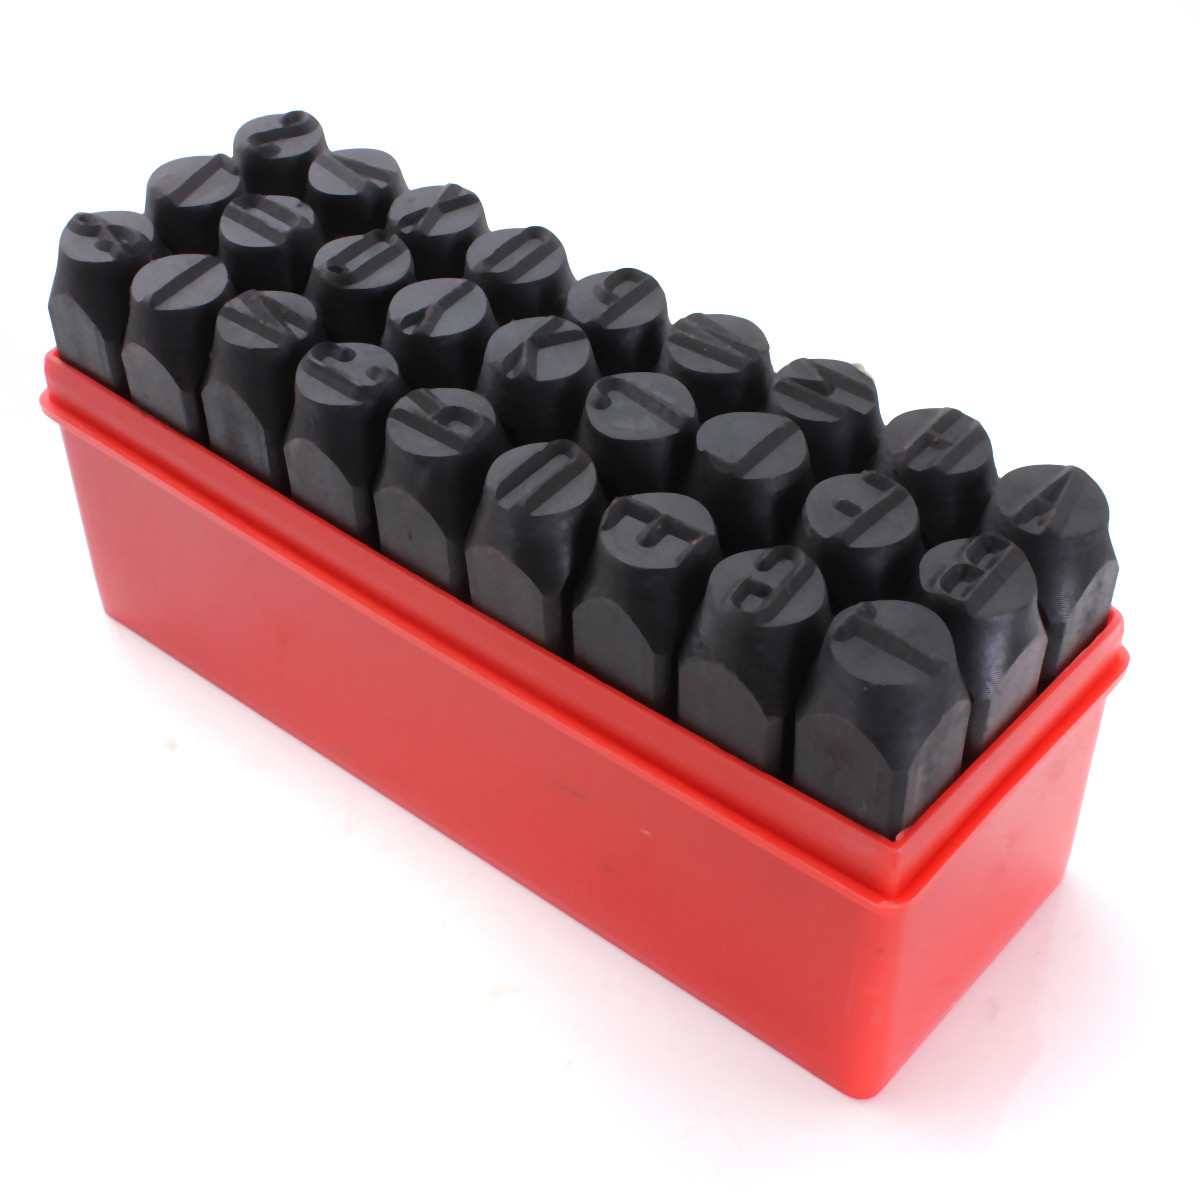 Stamps Letters Alphabet Set Punch Steel Metal Tool Case Craft Hot 12.5mm